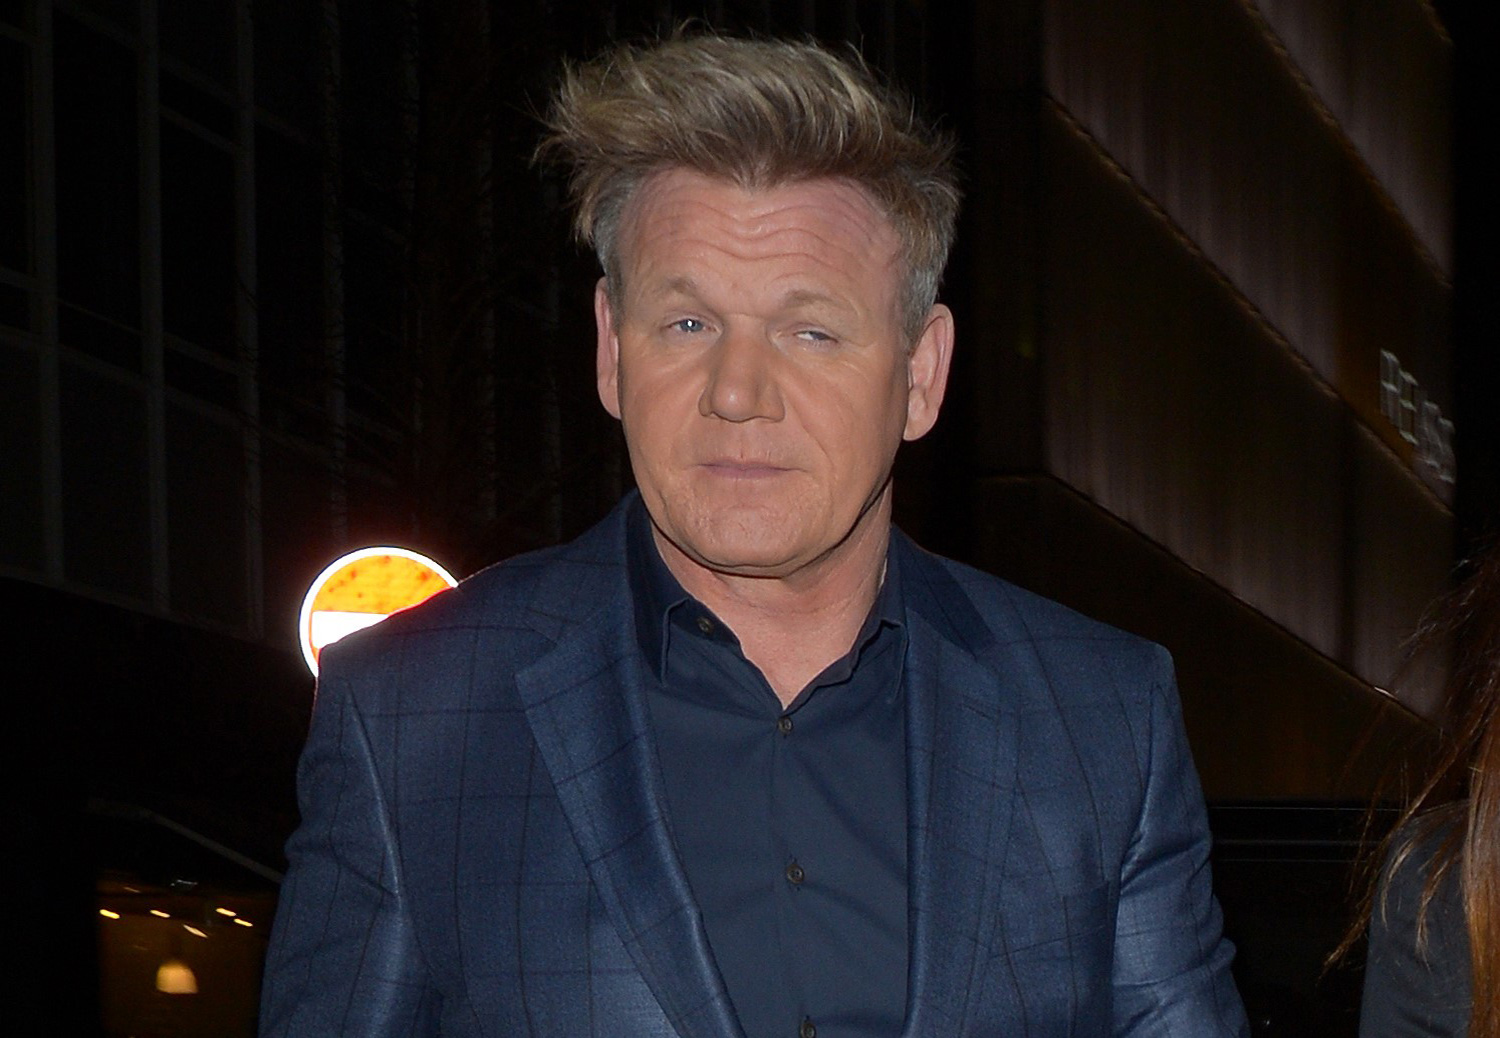 Gordon Ramsay's son Oscar is his double in cute Instagram post